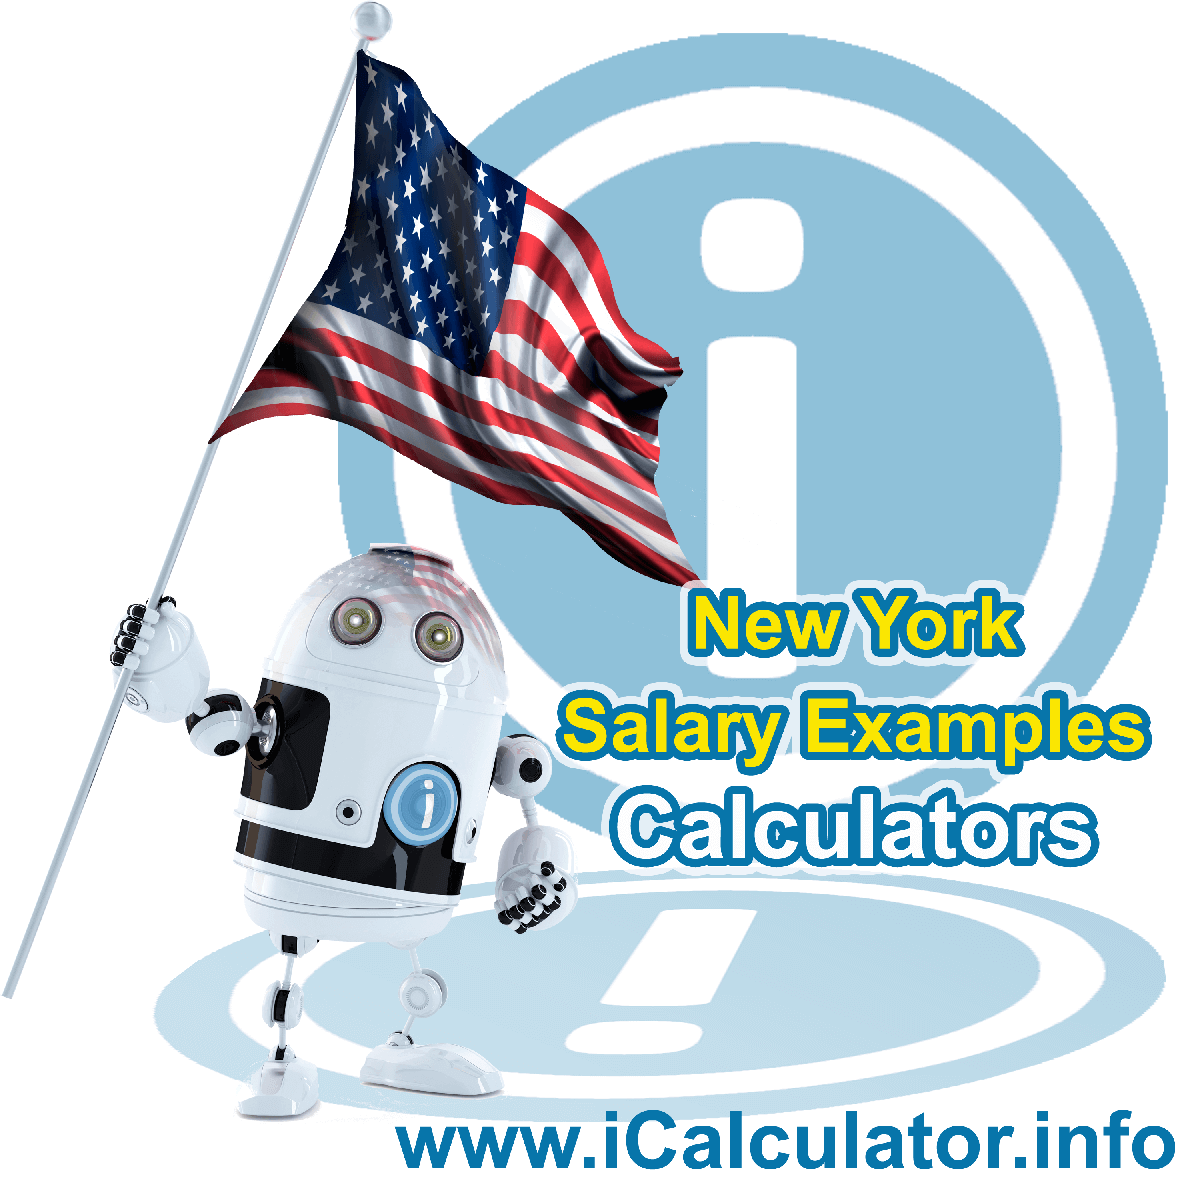 New York Salary Example for $50,000.00 in 2021 | iCalculator™ | $50,000.00 salary example for employee and employer paying New York State tincome taxes. Detailed salary after tax calculation including New York State Tax, Federal State Tax, Medicare Deductions, Social Security, Capital Gains and other income tax and salary deductions complete with supporting New York state tax tables